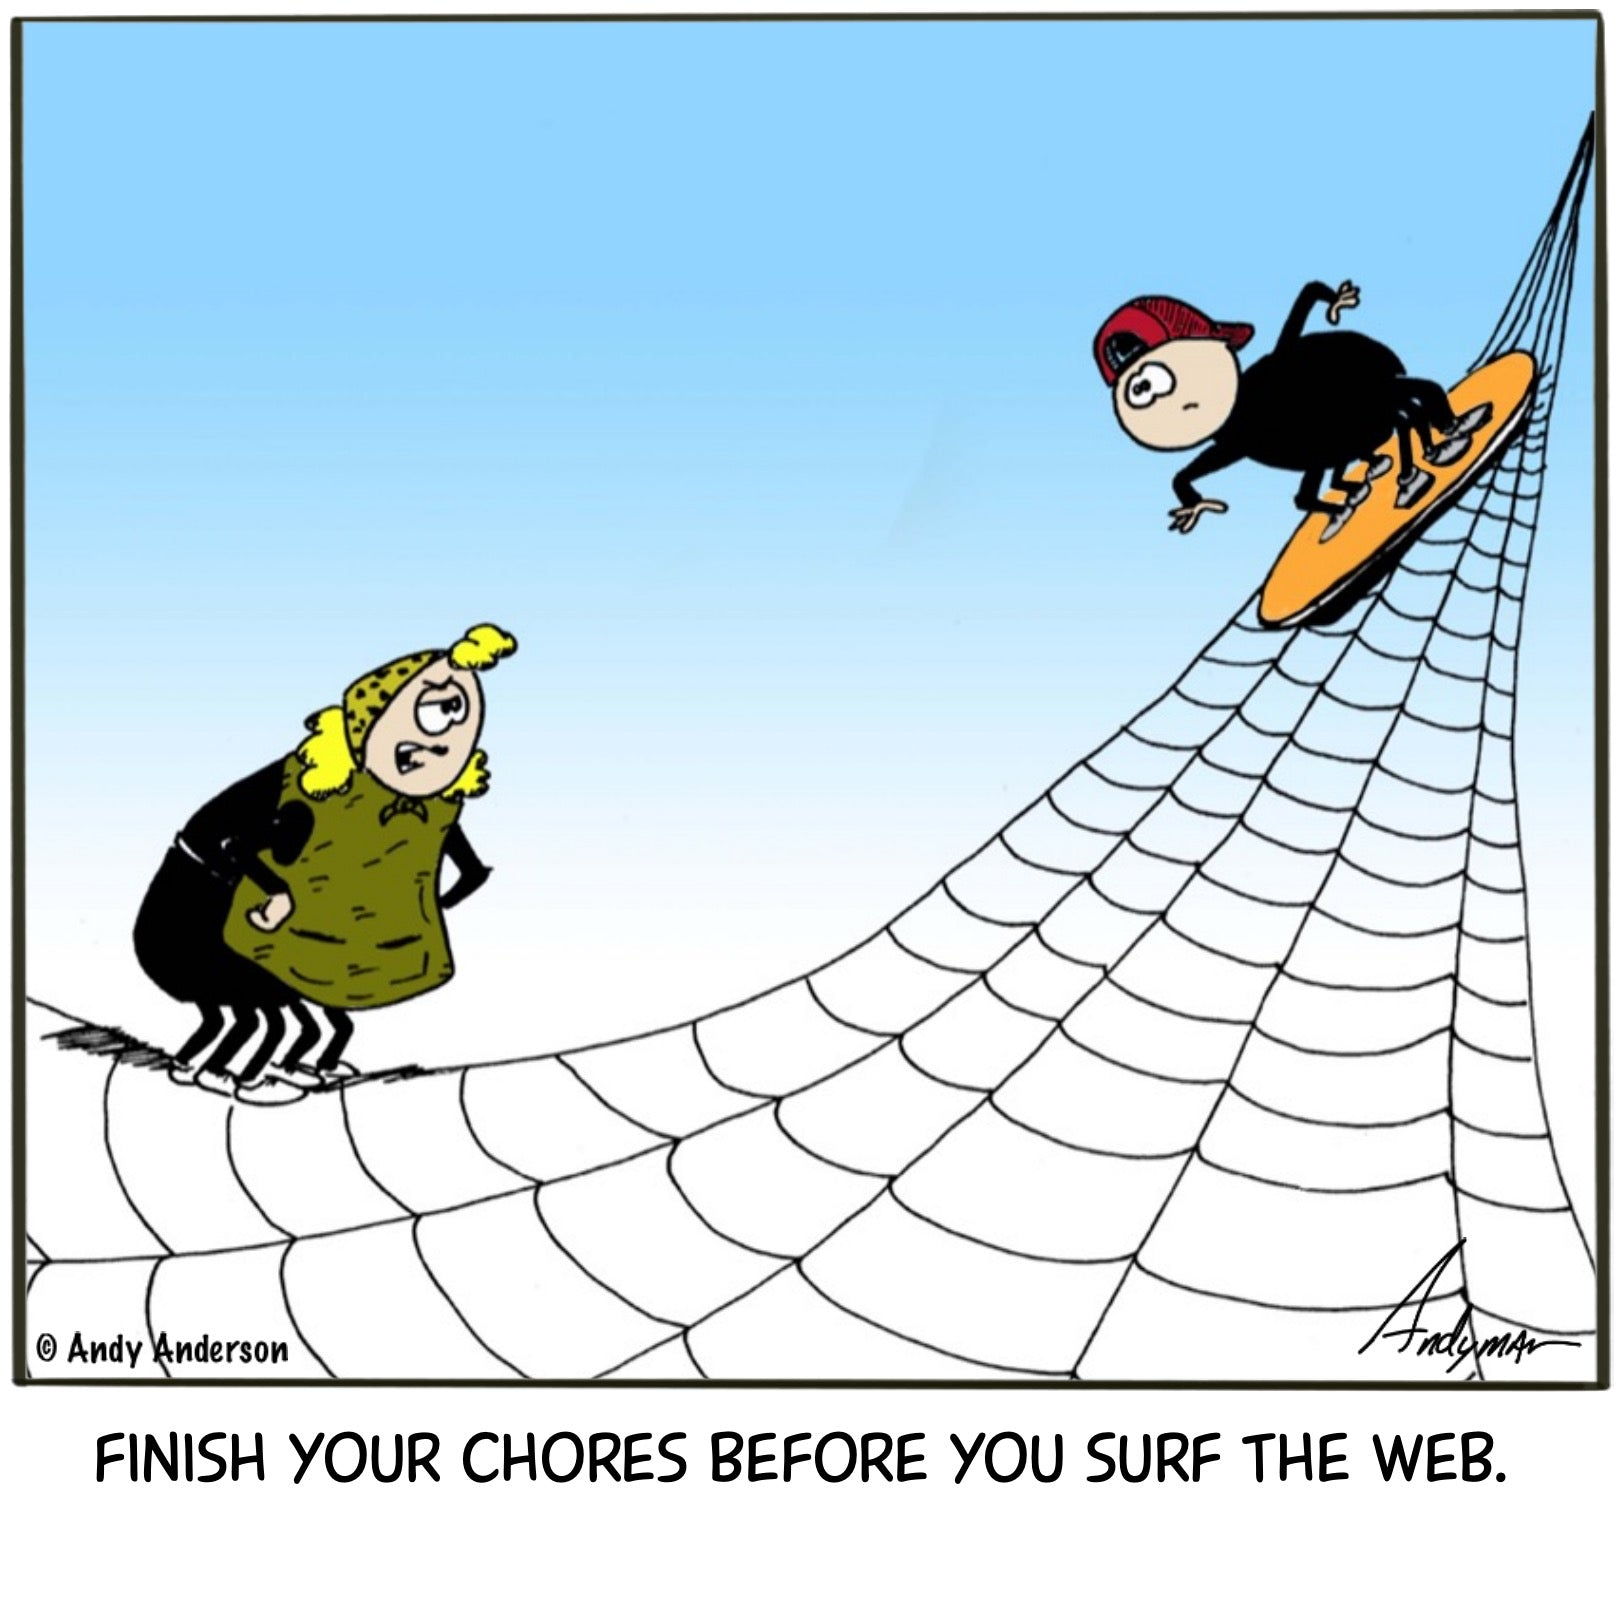 Cartoon about a spider surfing the web by Andy Anderson